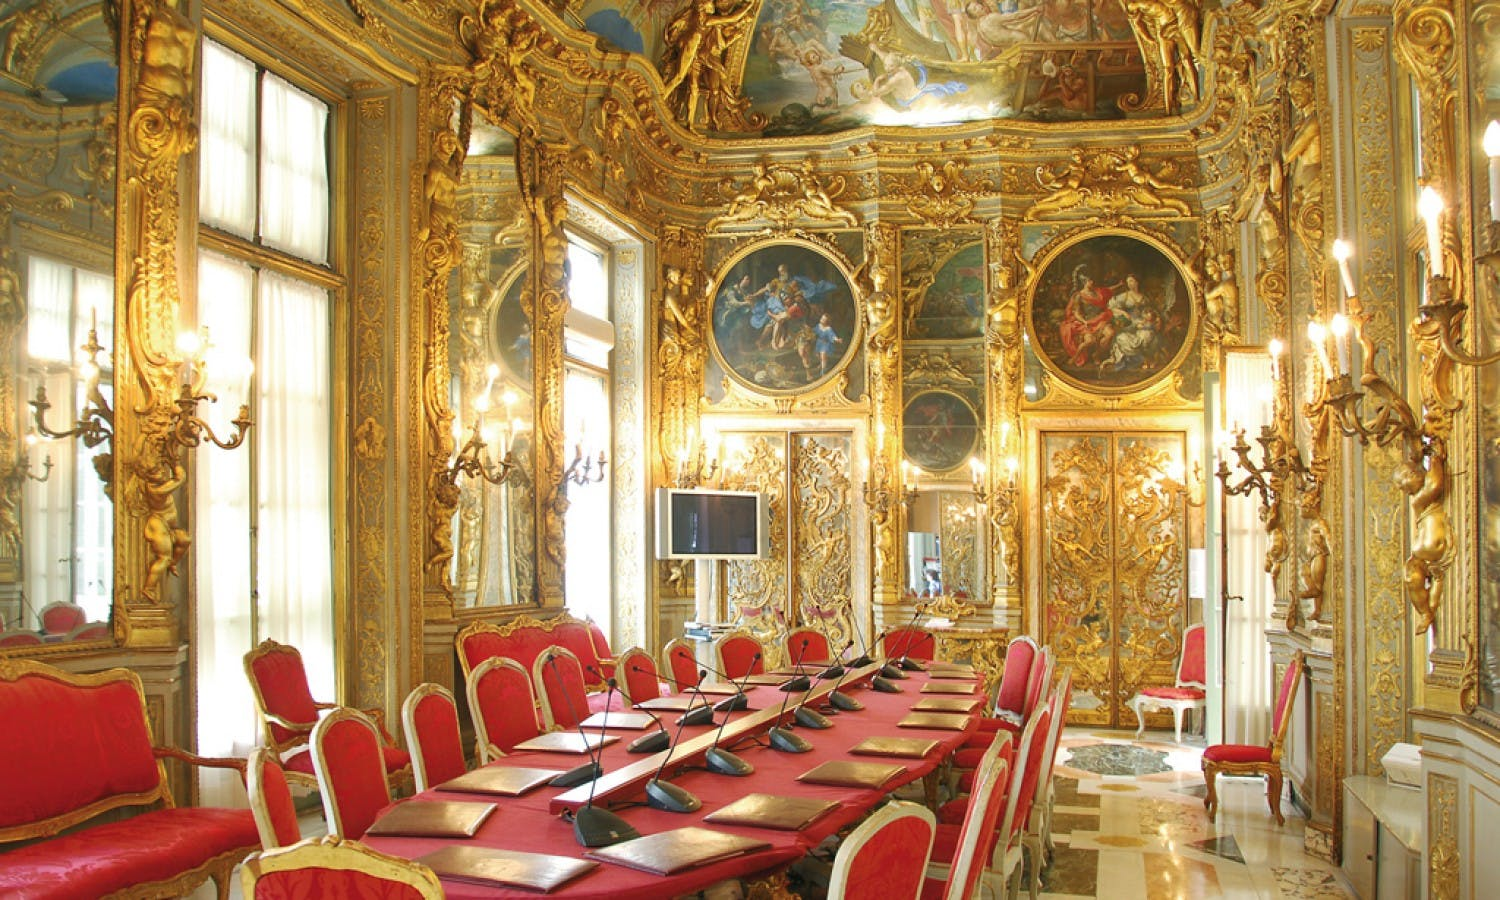 Guided tour of the aristocratic Rolli Palaces in Genoa